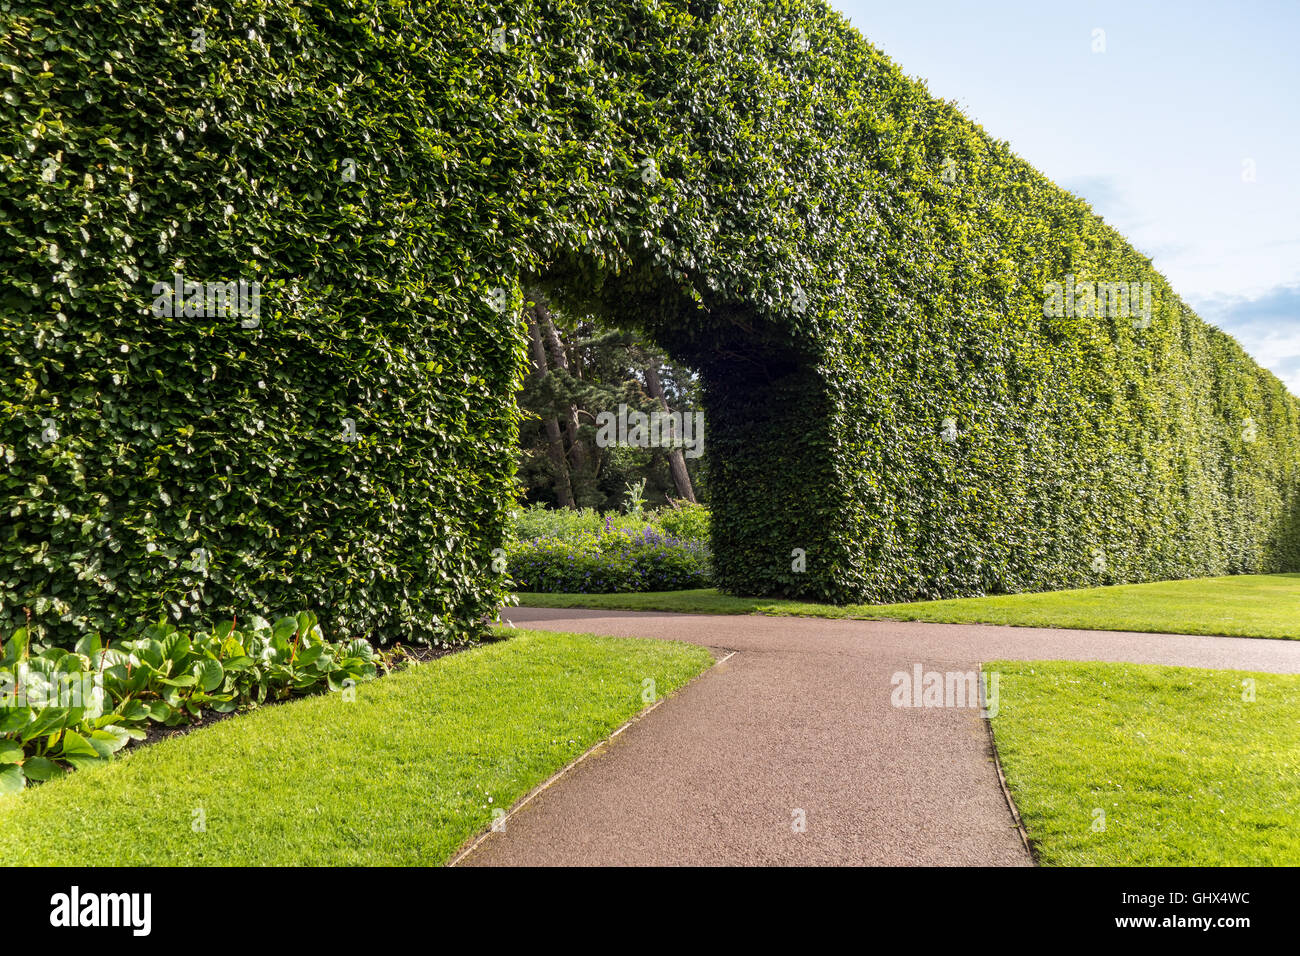 Edinburgh Royal Botanic Garden RBGE. Famous century-old Beech Hedge 8 meters; 23ft high. - Stock Image